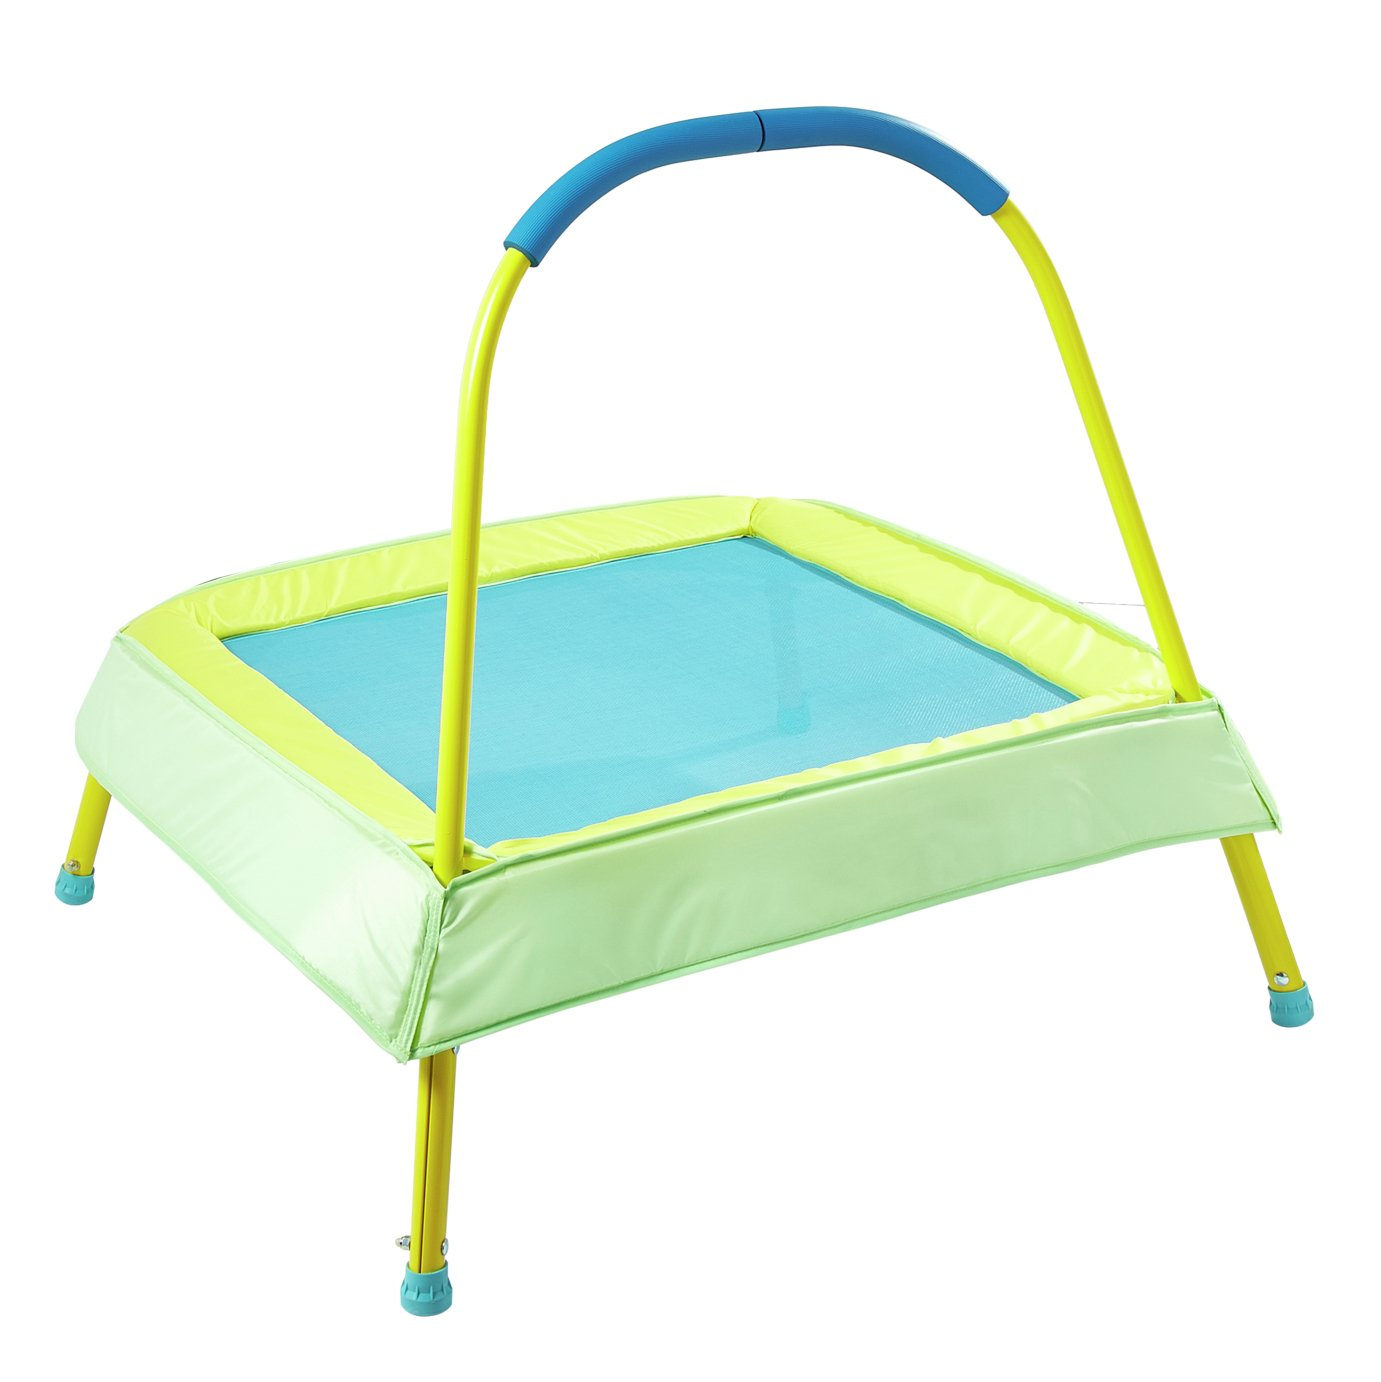 Chad Valley Kid's 2ft Indoor Trampoline - Green